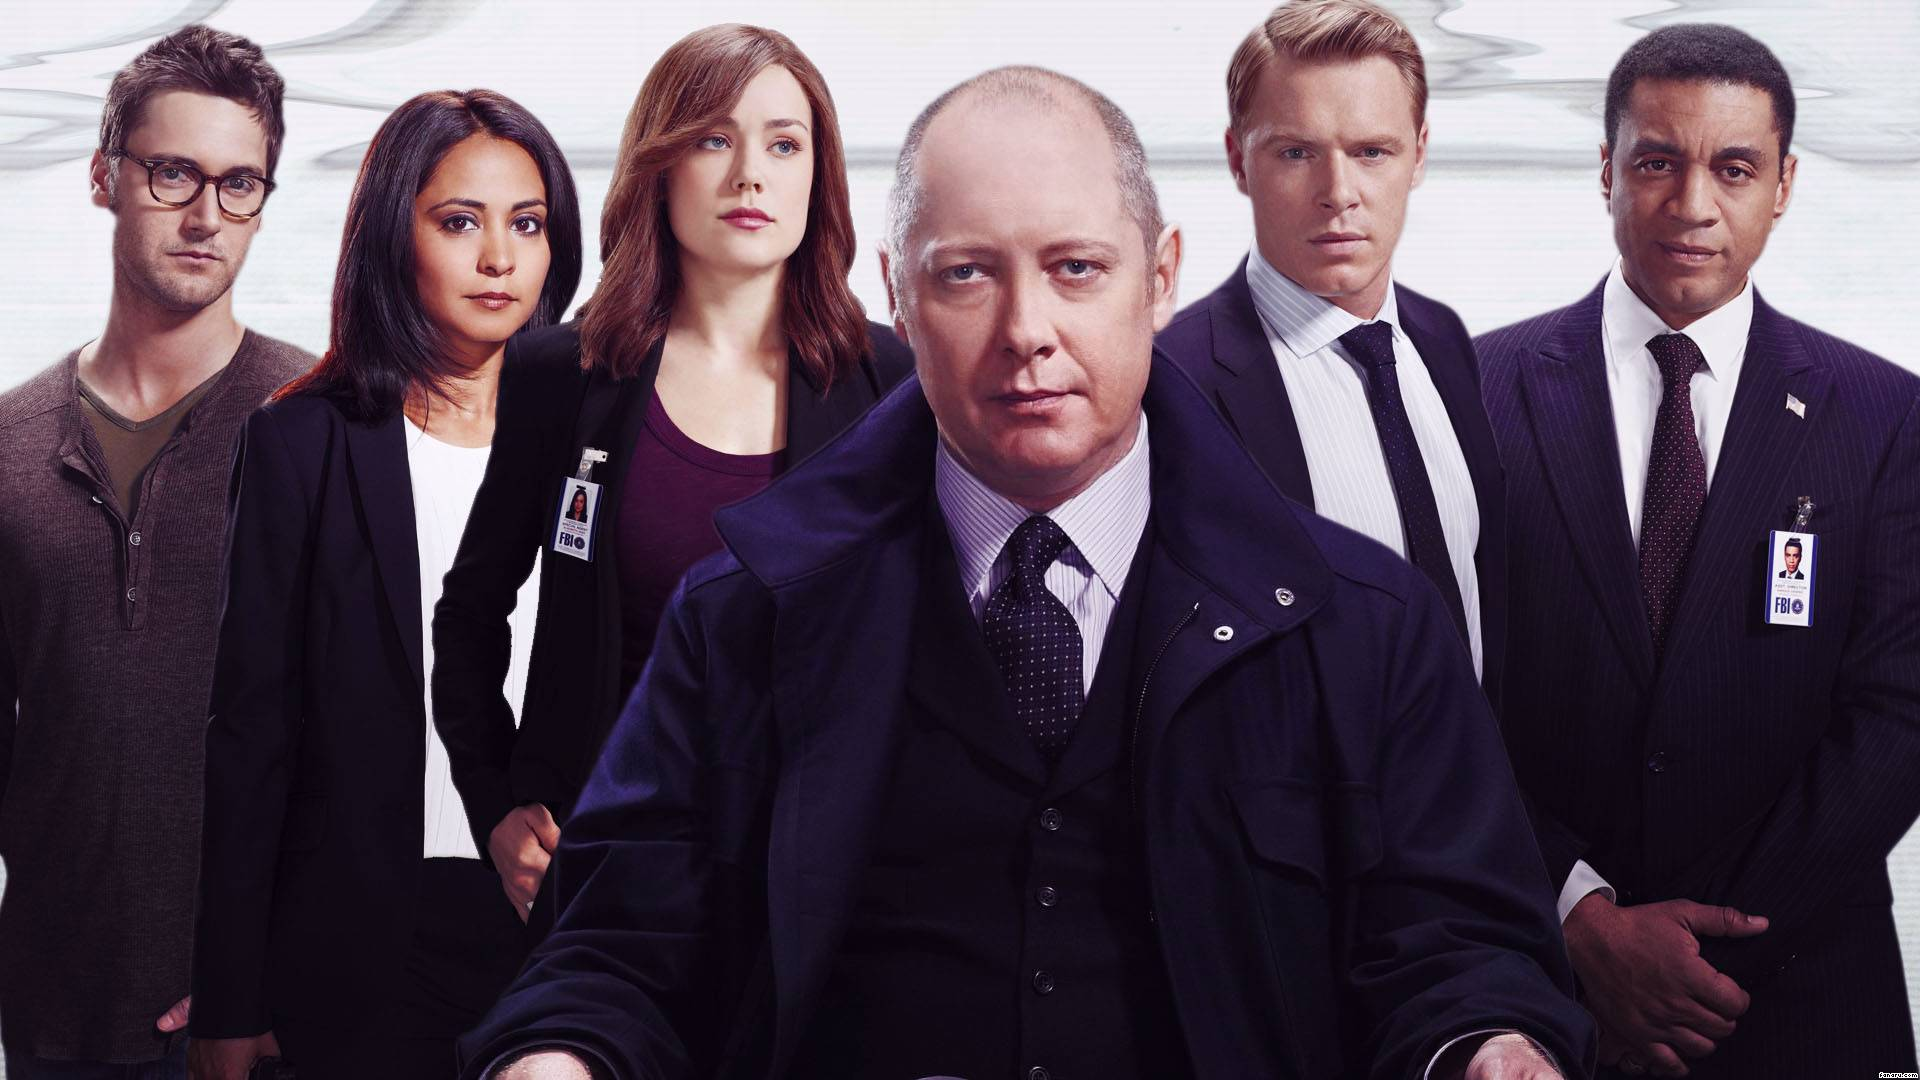 The Blacklist Wallpapers